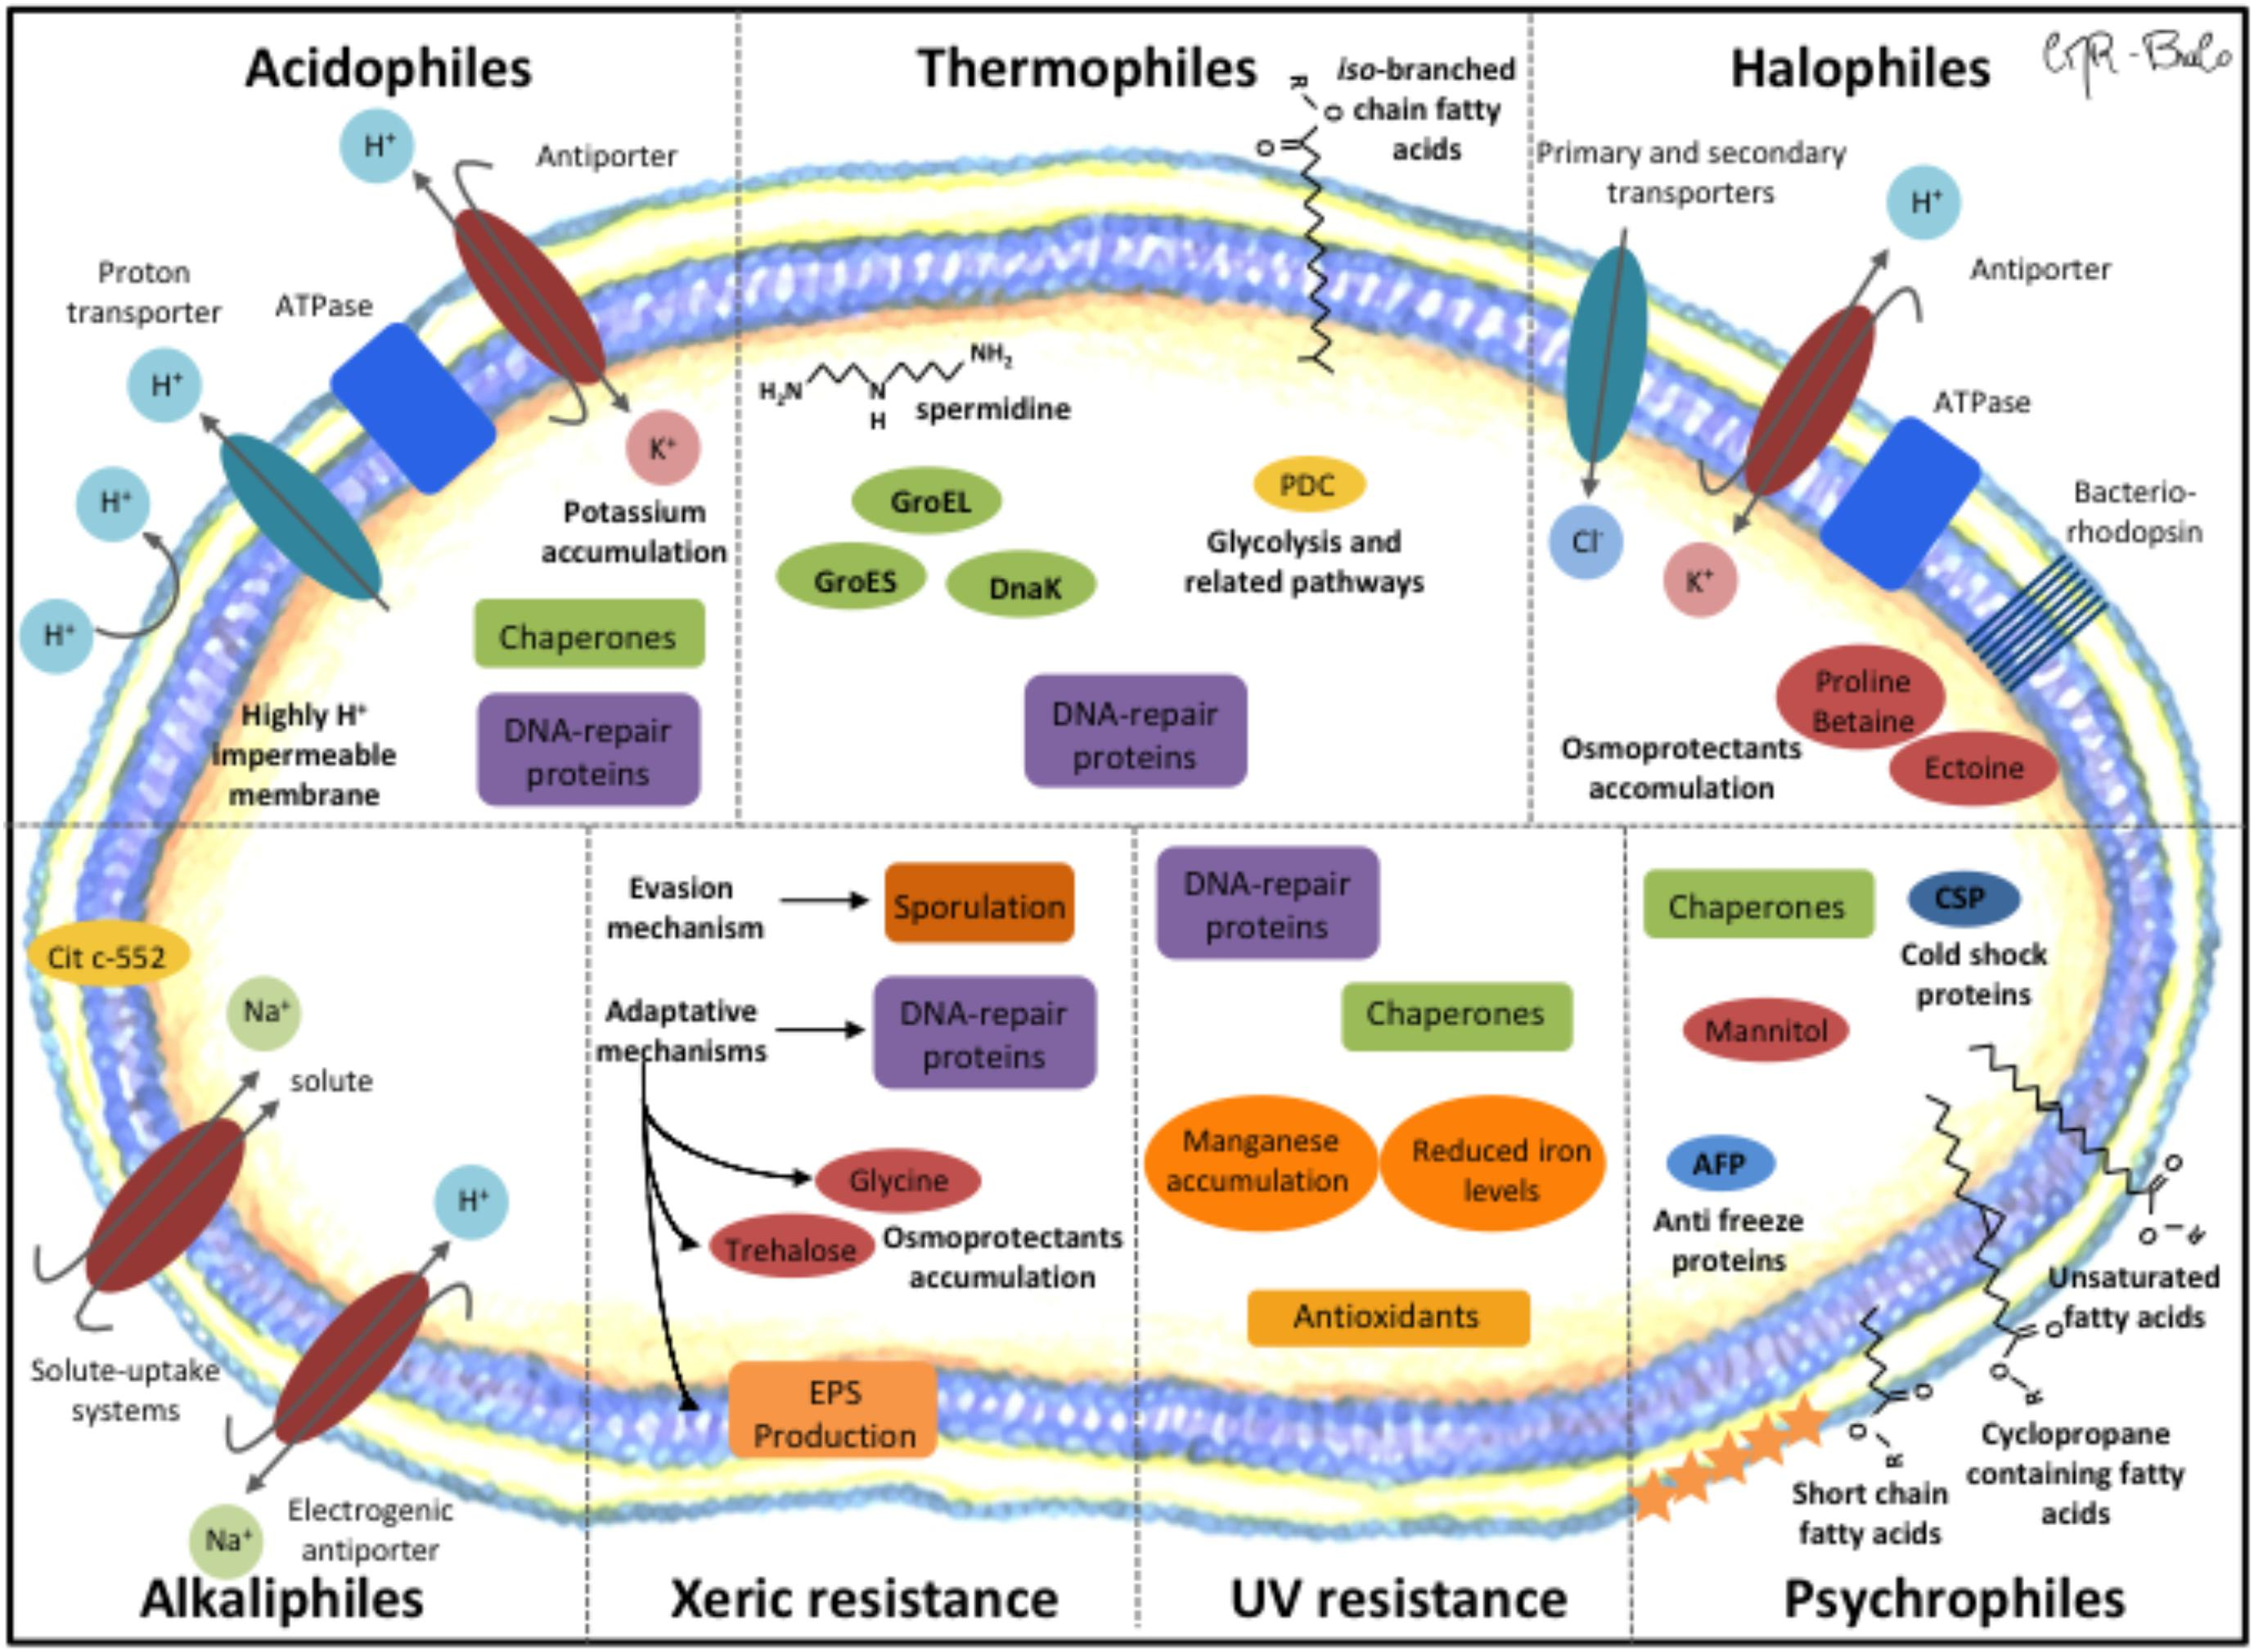 Frontiers | Living at the Frontiers of Life: Extremophiles